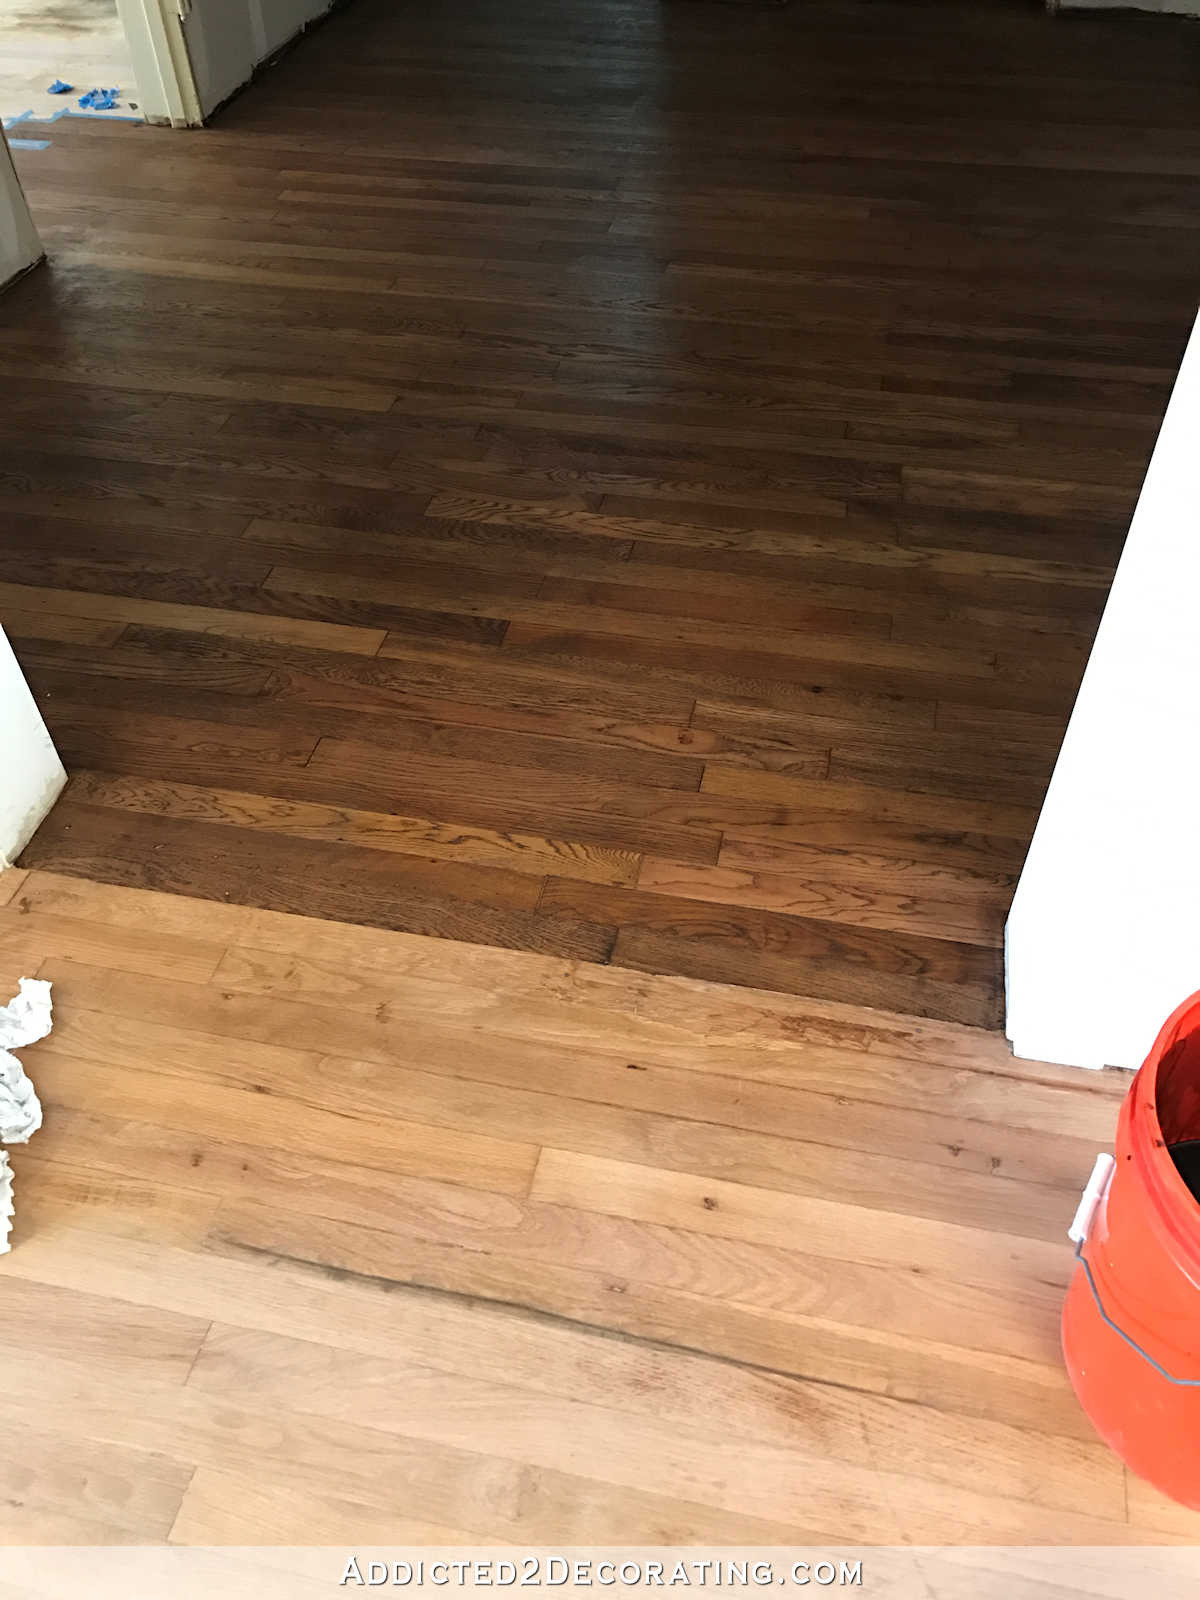 hardwood floor stain colors of adventures in staining my red oak hardwood floors products process throughout staining red oak hardwood floors 2 tape off one section at a time for